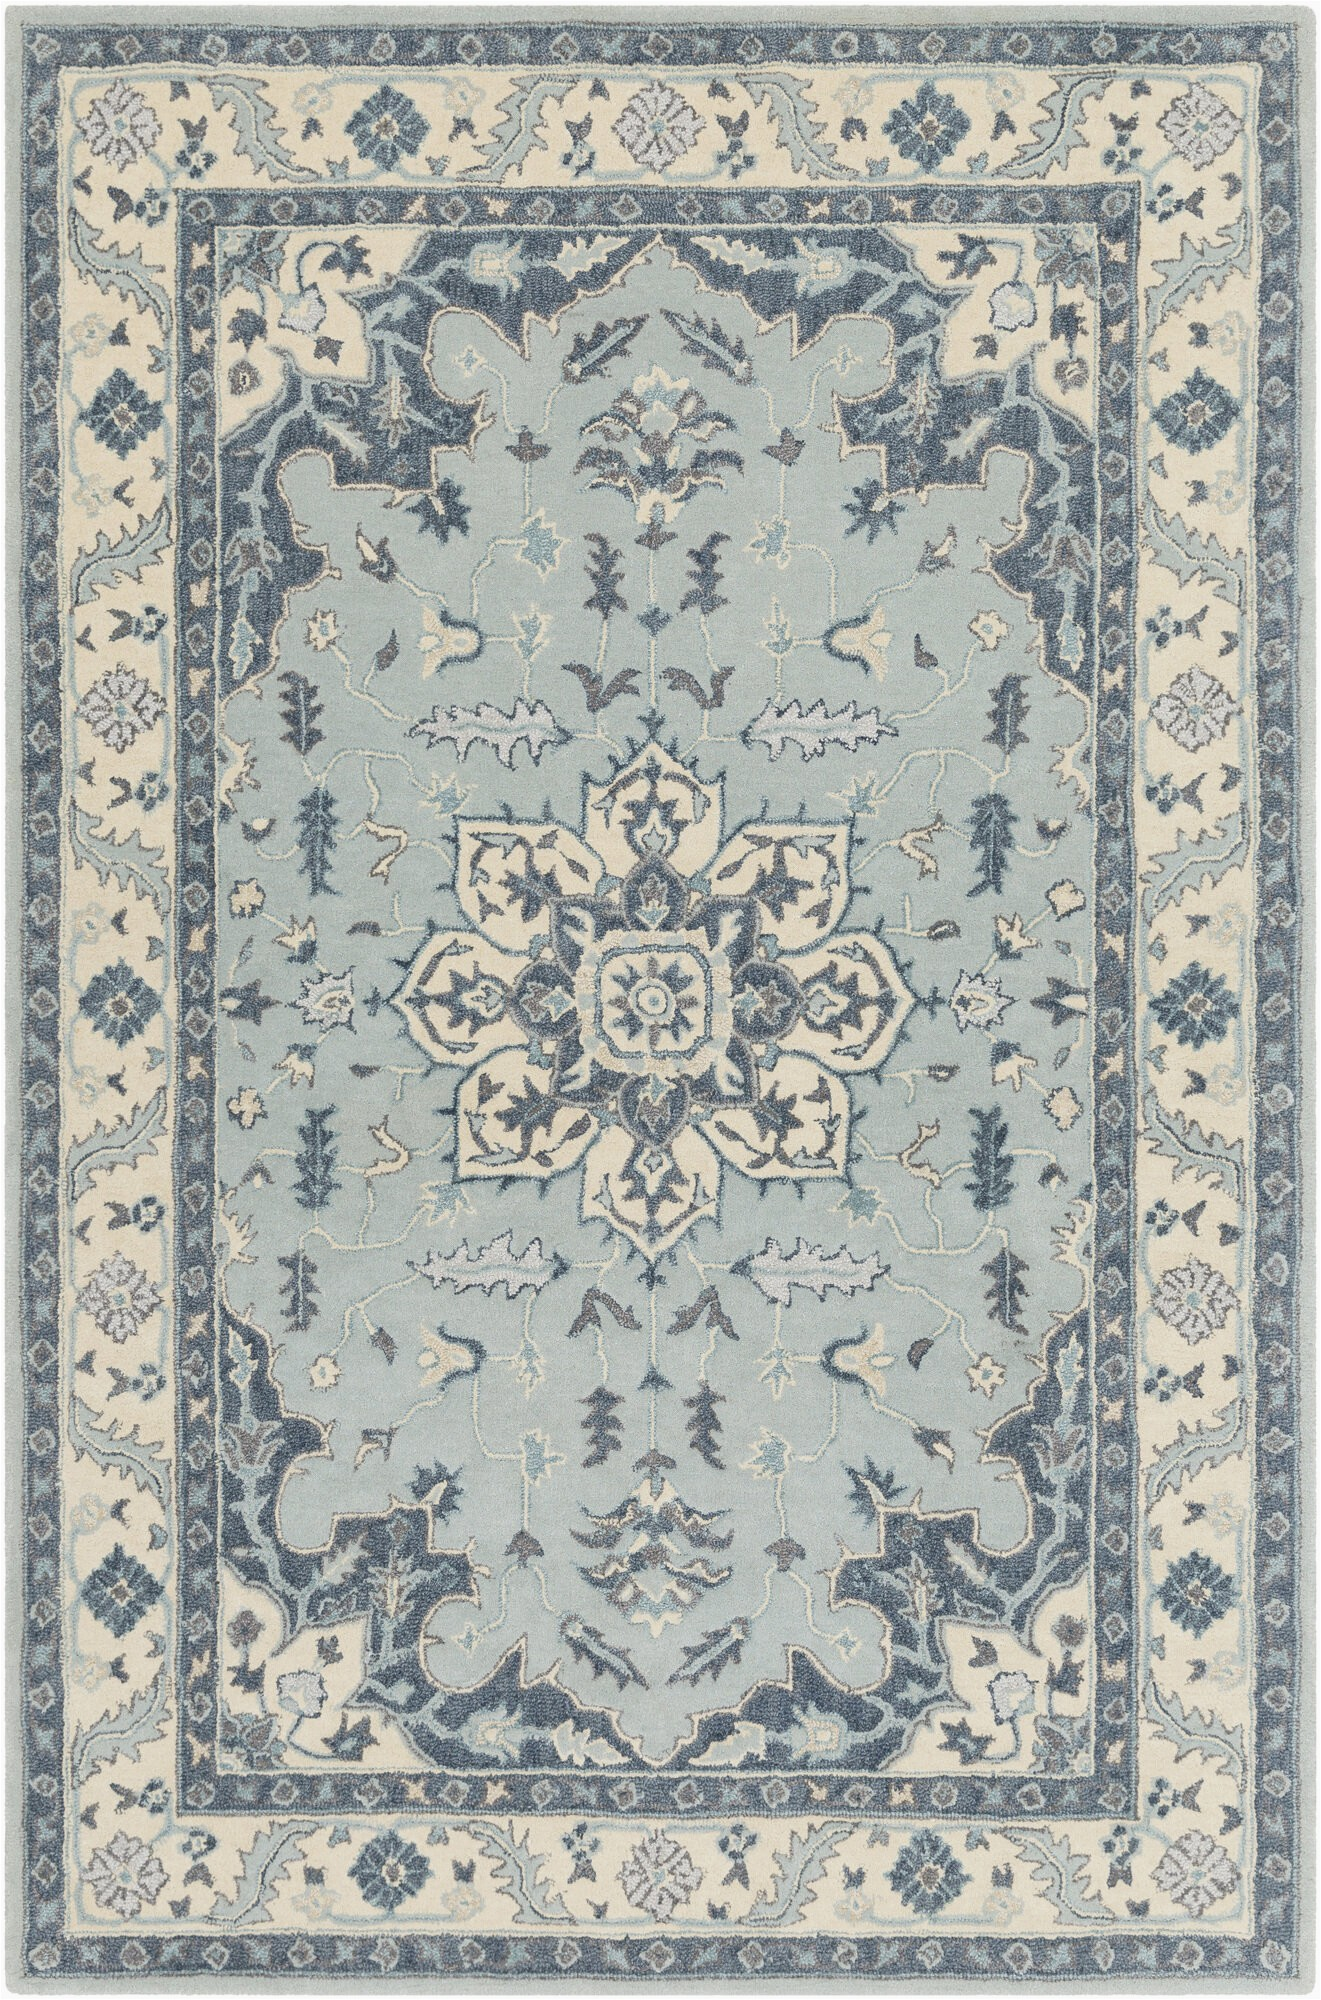 Blue Green oriental Rug Thynes oriental Handmade Tufted Wool Blue Green area Rug